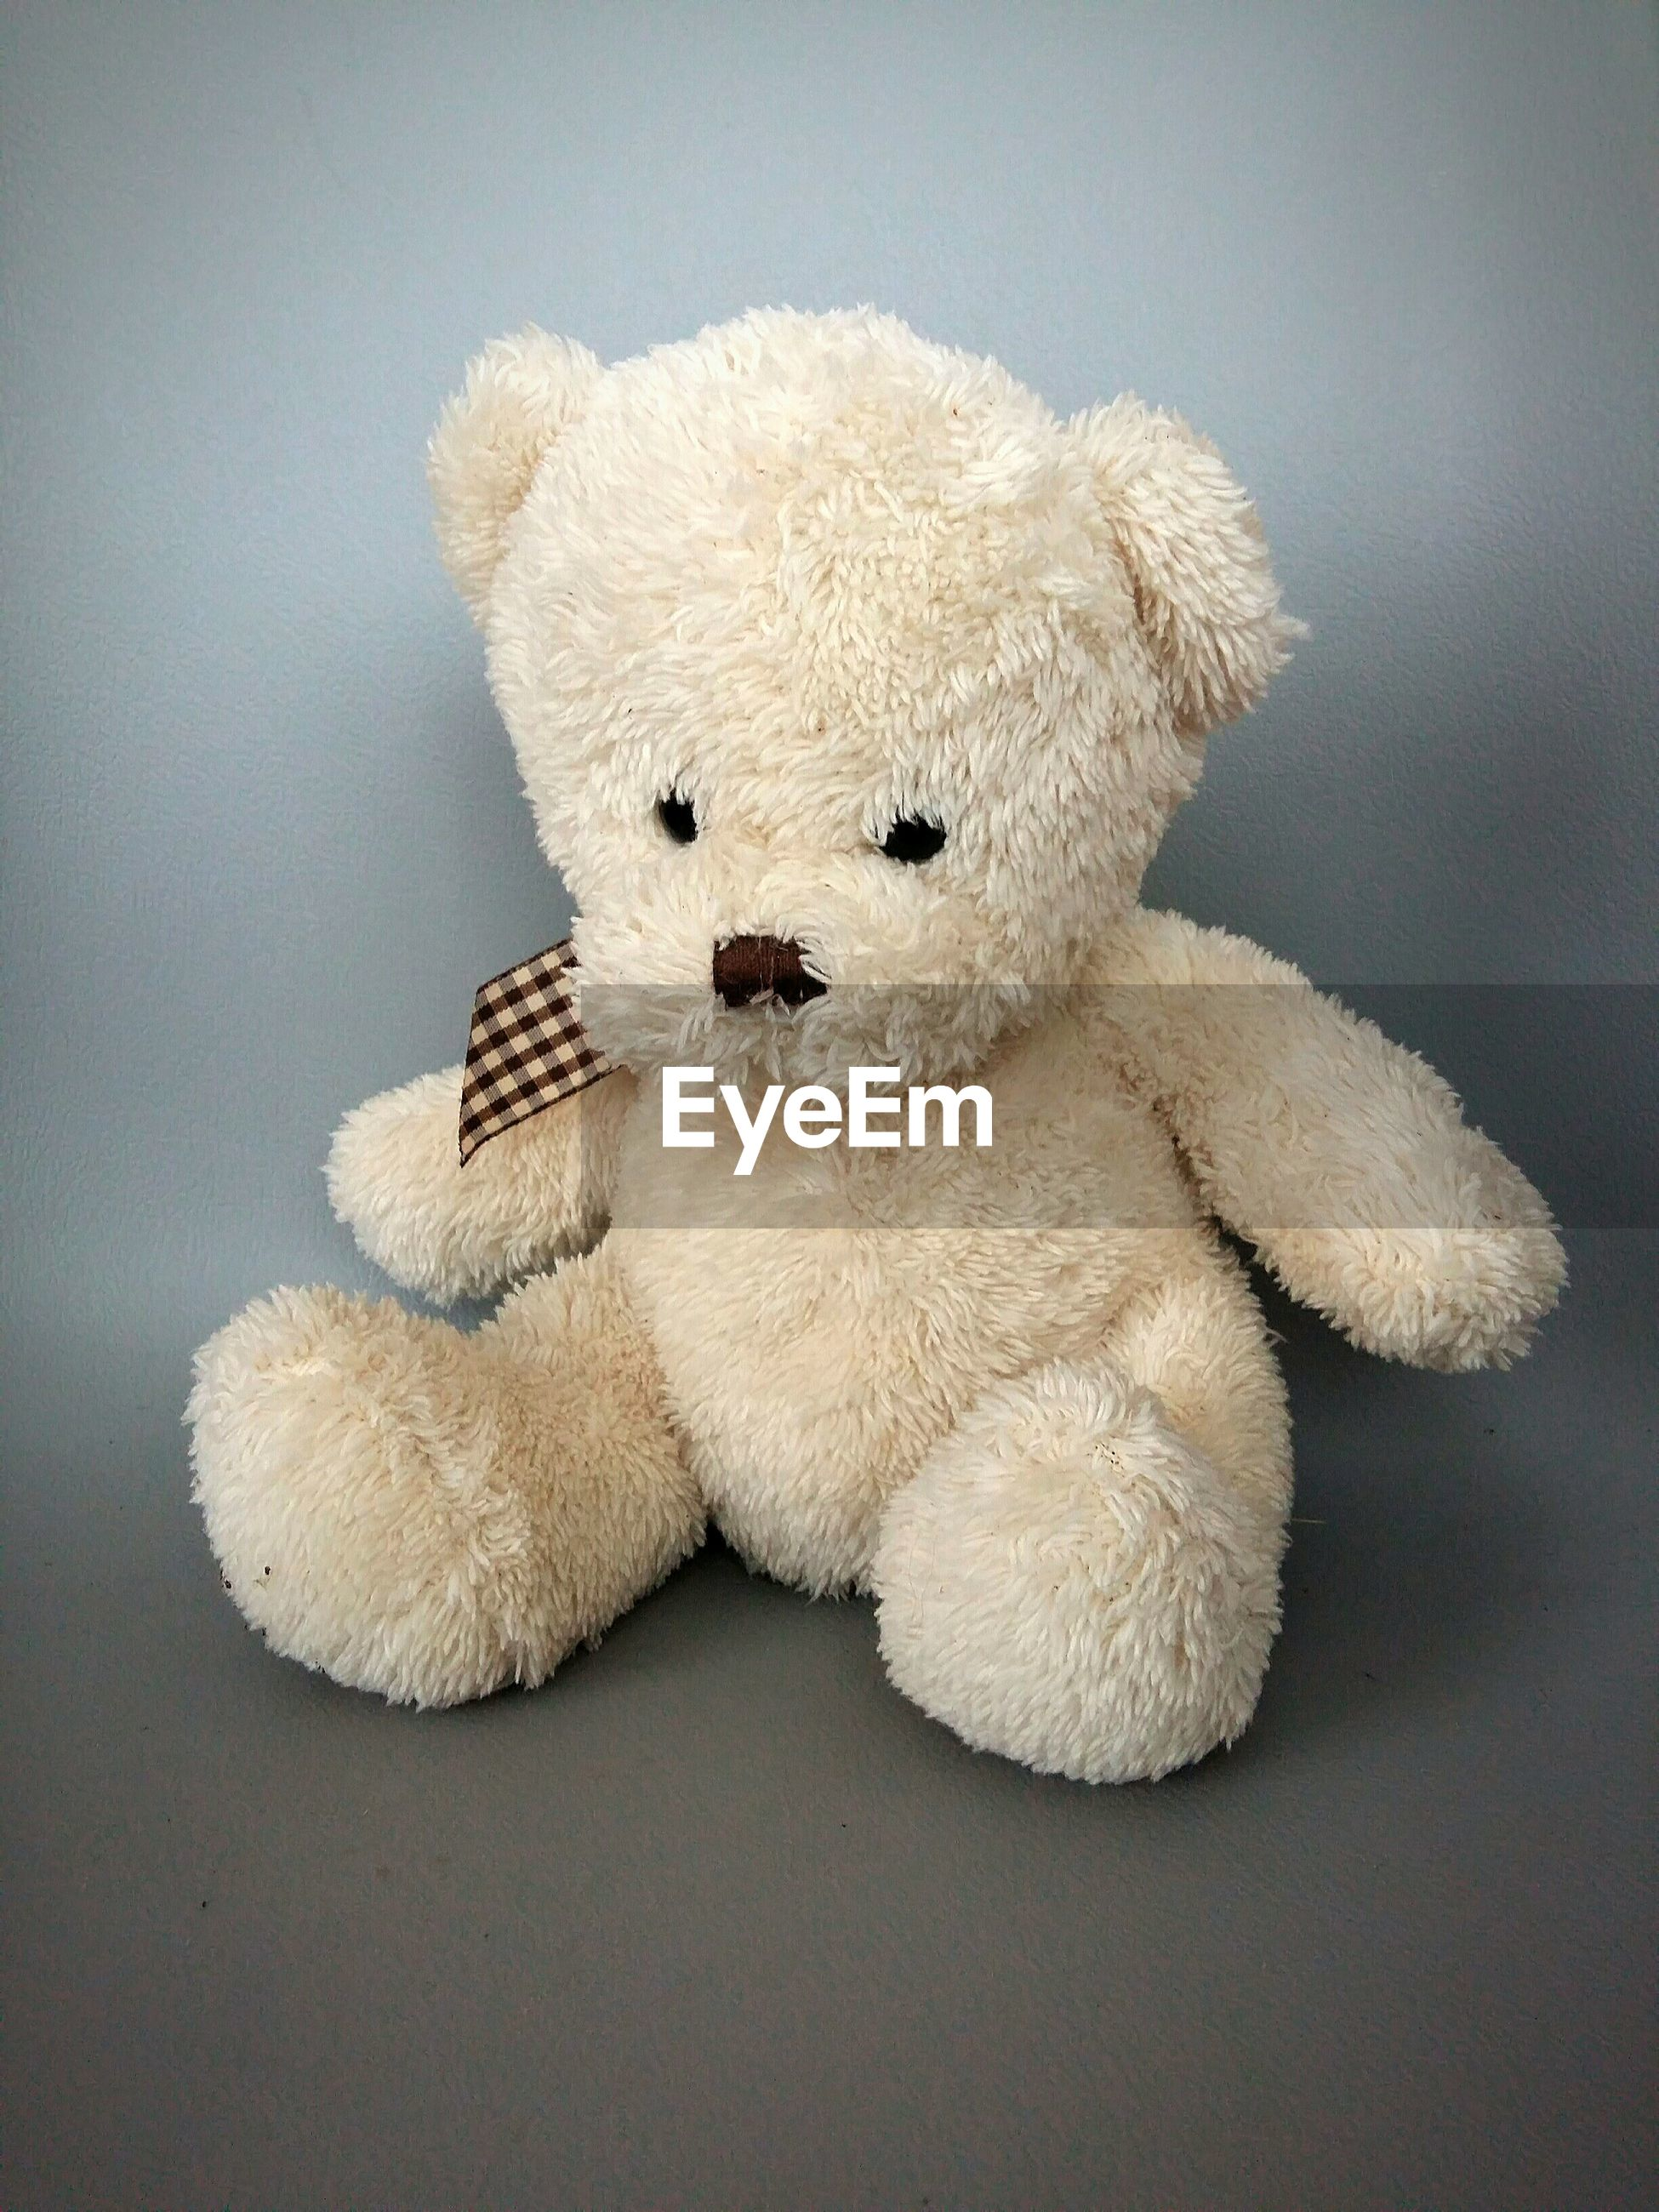 Close-up of stuffed toy against gray background